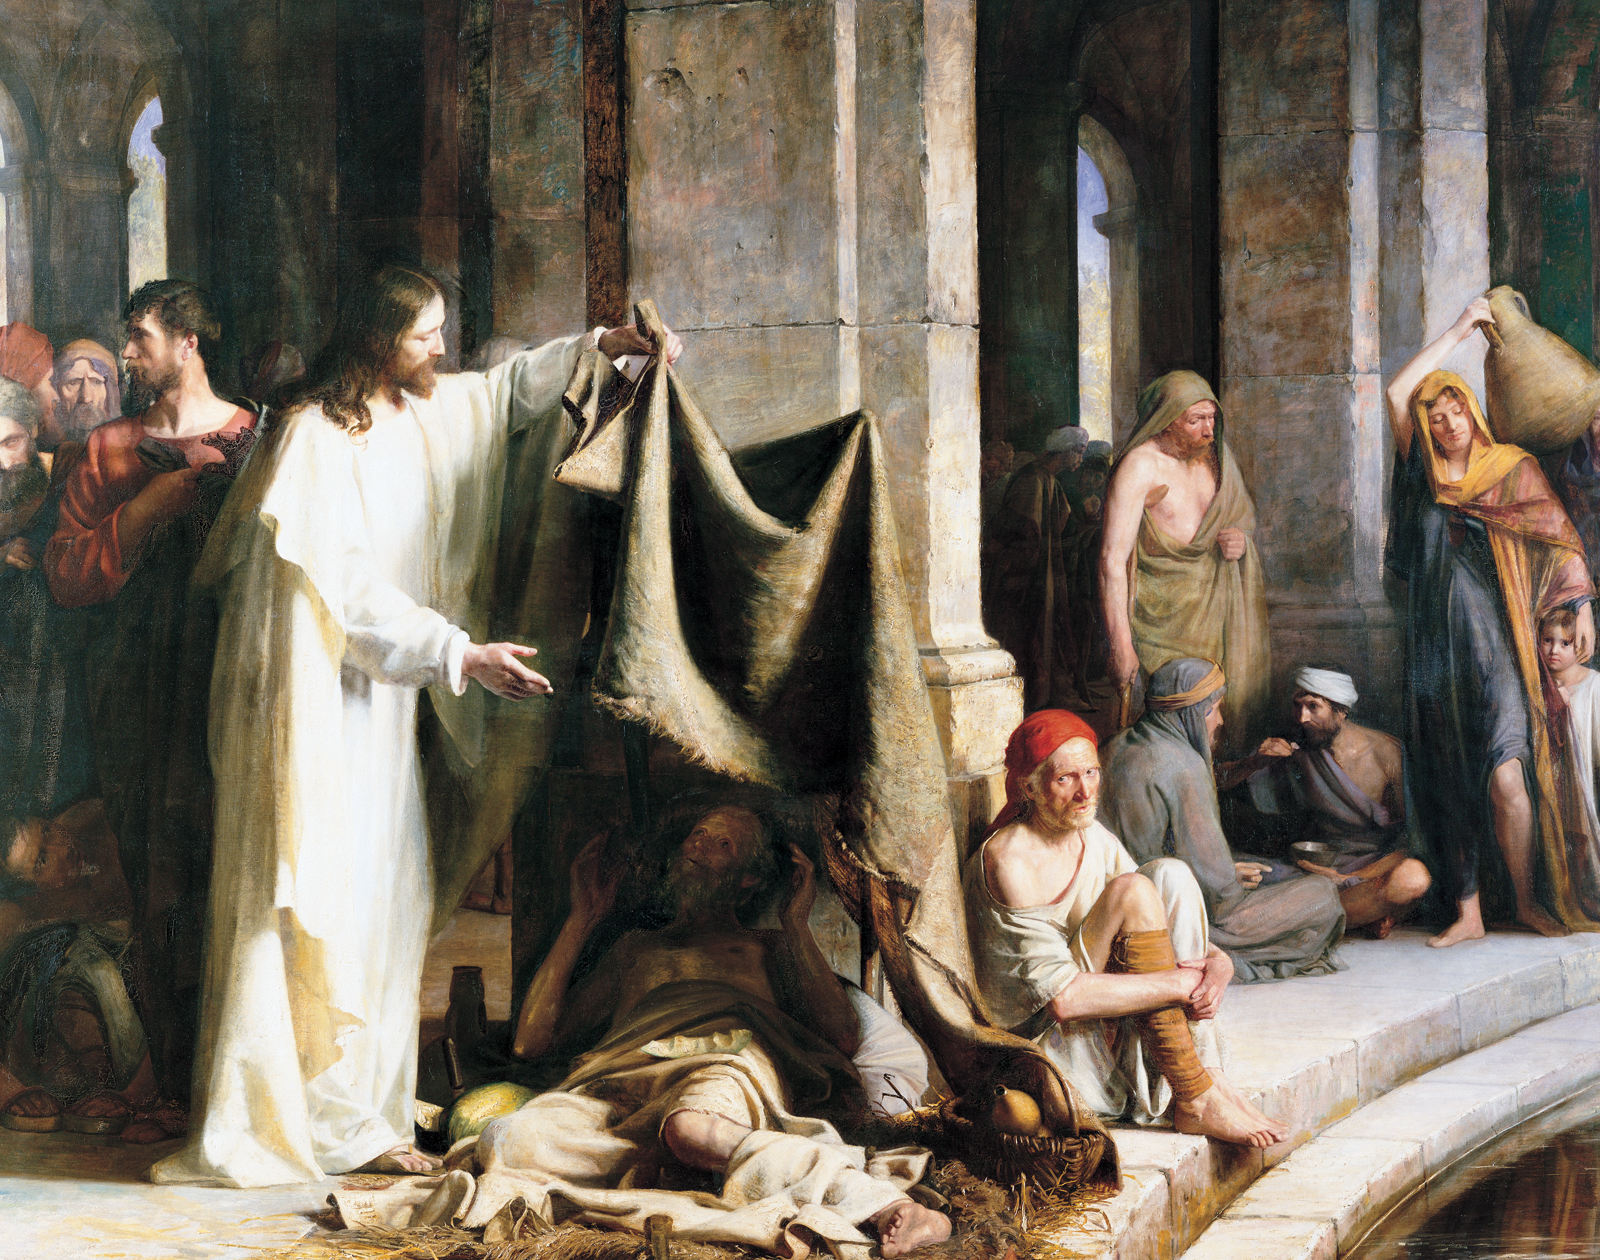 Christ Healing the Sick at Bethesda , by Carl Heinrich Bloch (Danish, 1834-1890). Oil on Canvas. 111 x 126 in.BYU Museum of Art.